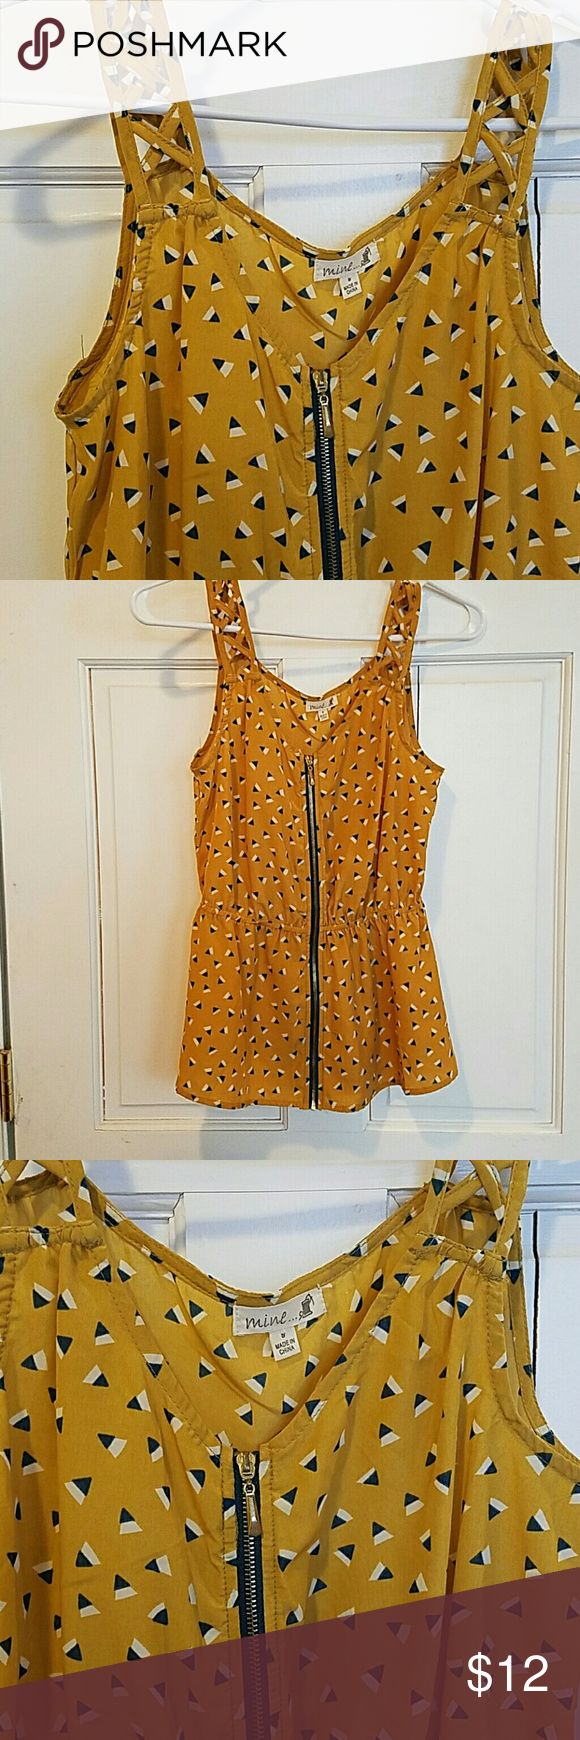 Zip up triangle pattern tank Very cute, mustard colored tank with blue and white triangles.  Zips up with cute strappy straps. Excellent condition! Mine Tops Tank Tops